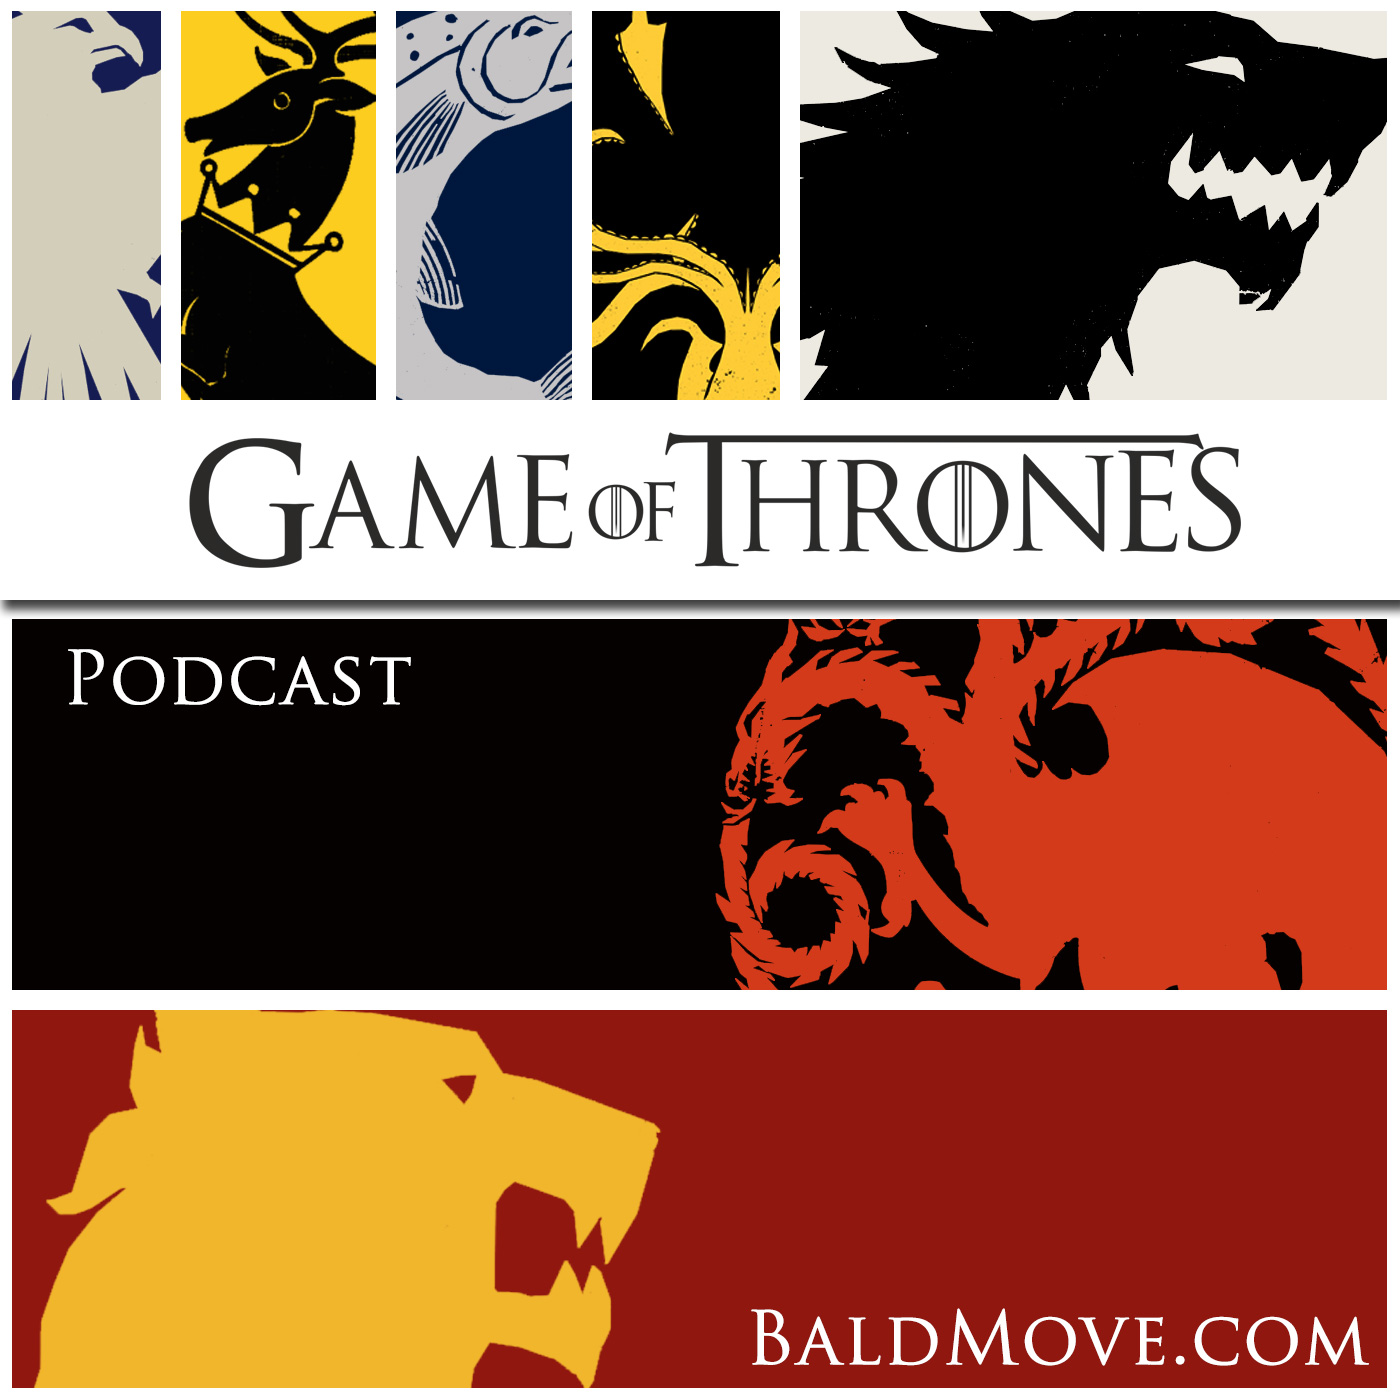 """Gods of Thrones"" Vol. 2 Preview Podcast #2!"